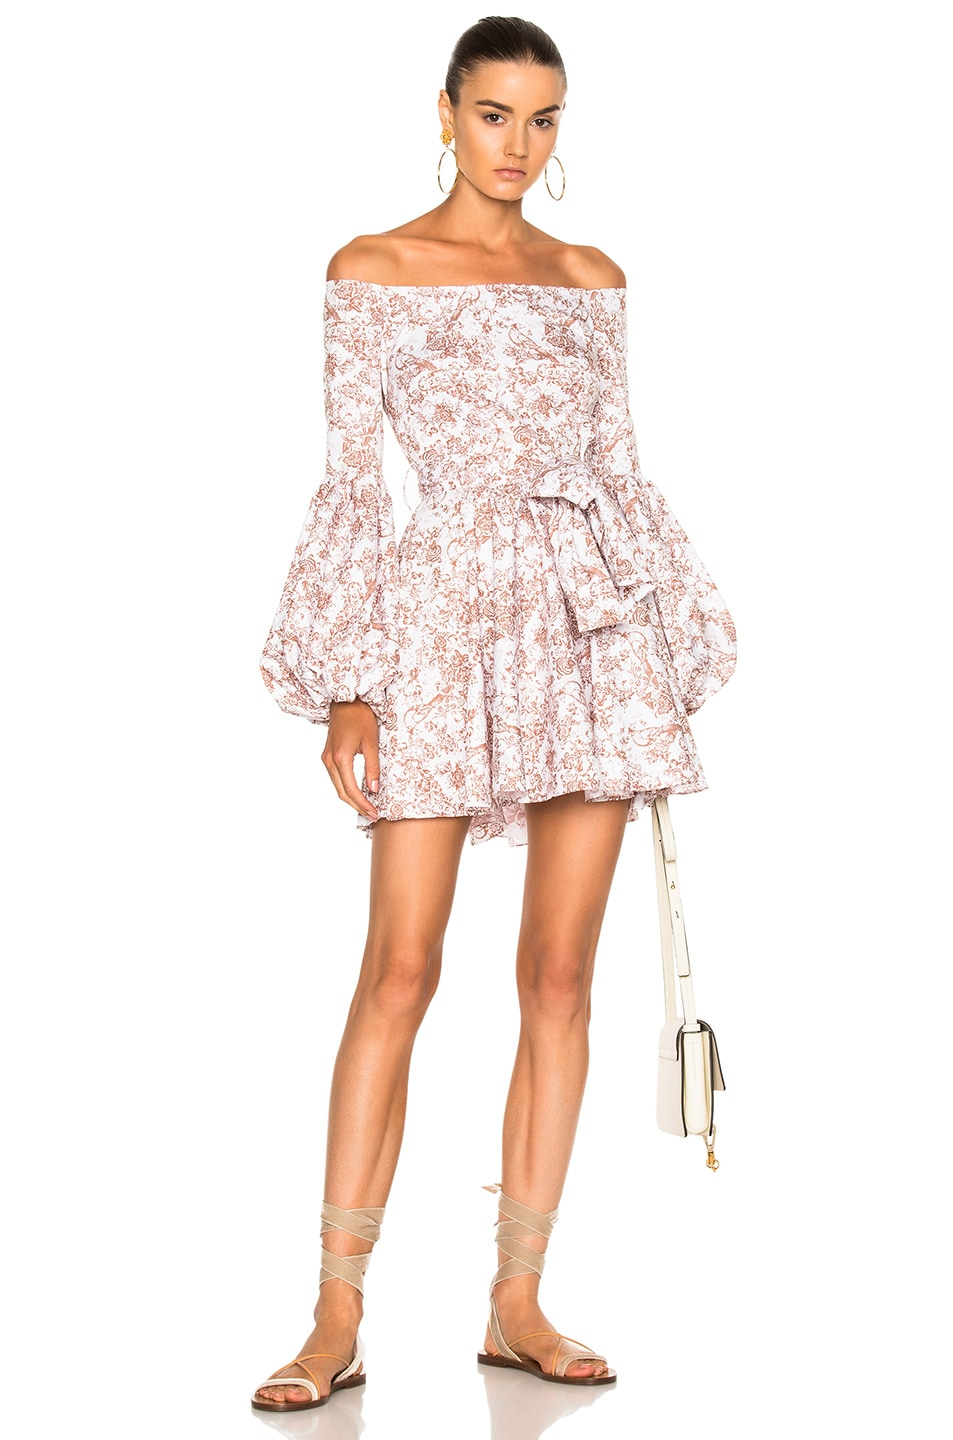 d3097589fd6e Image 1 of Caroline Constas Gisele Mini Dress in Beige Multi